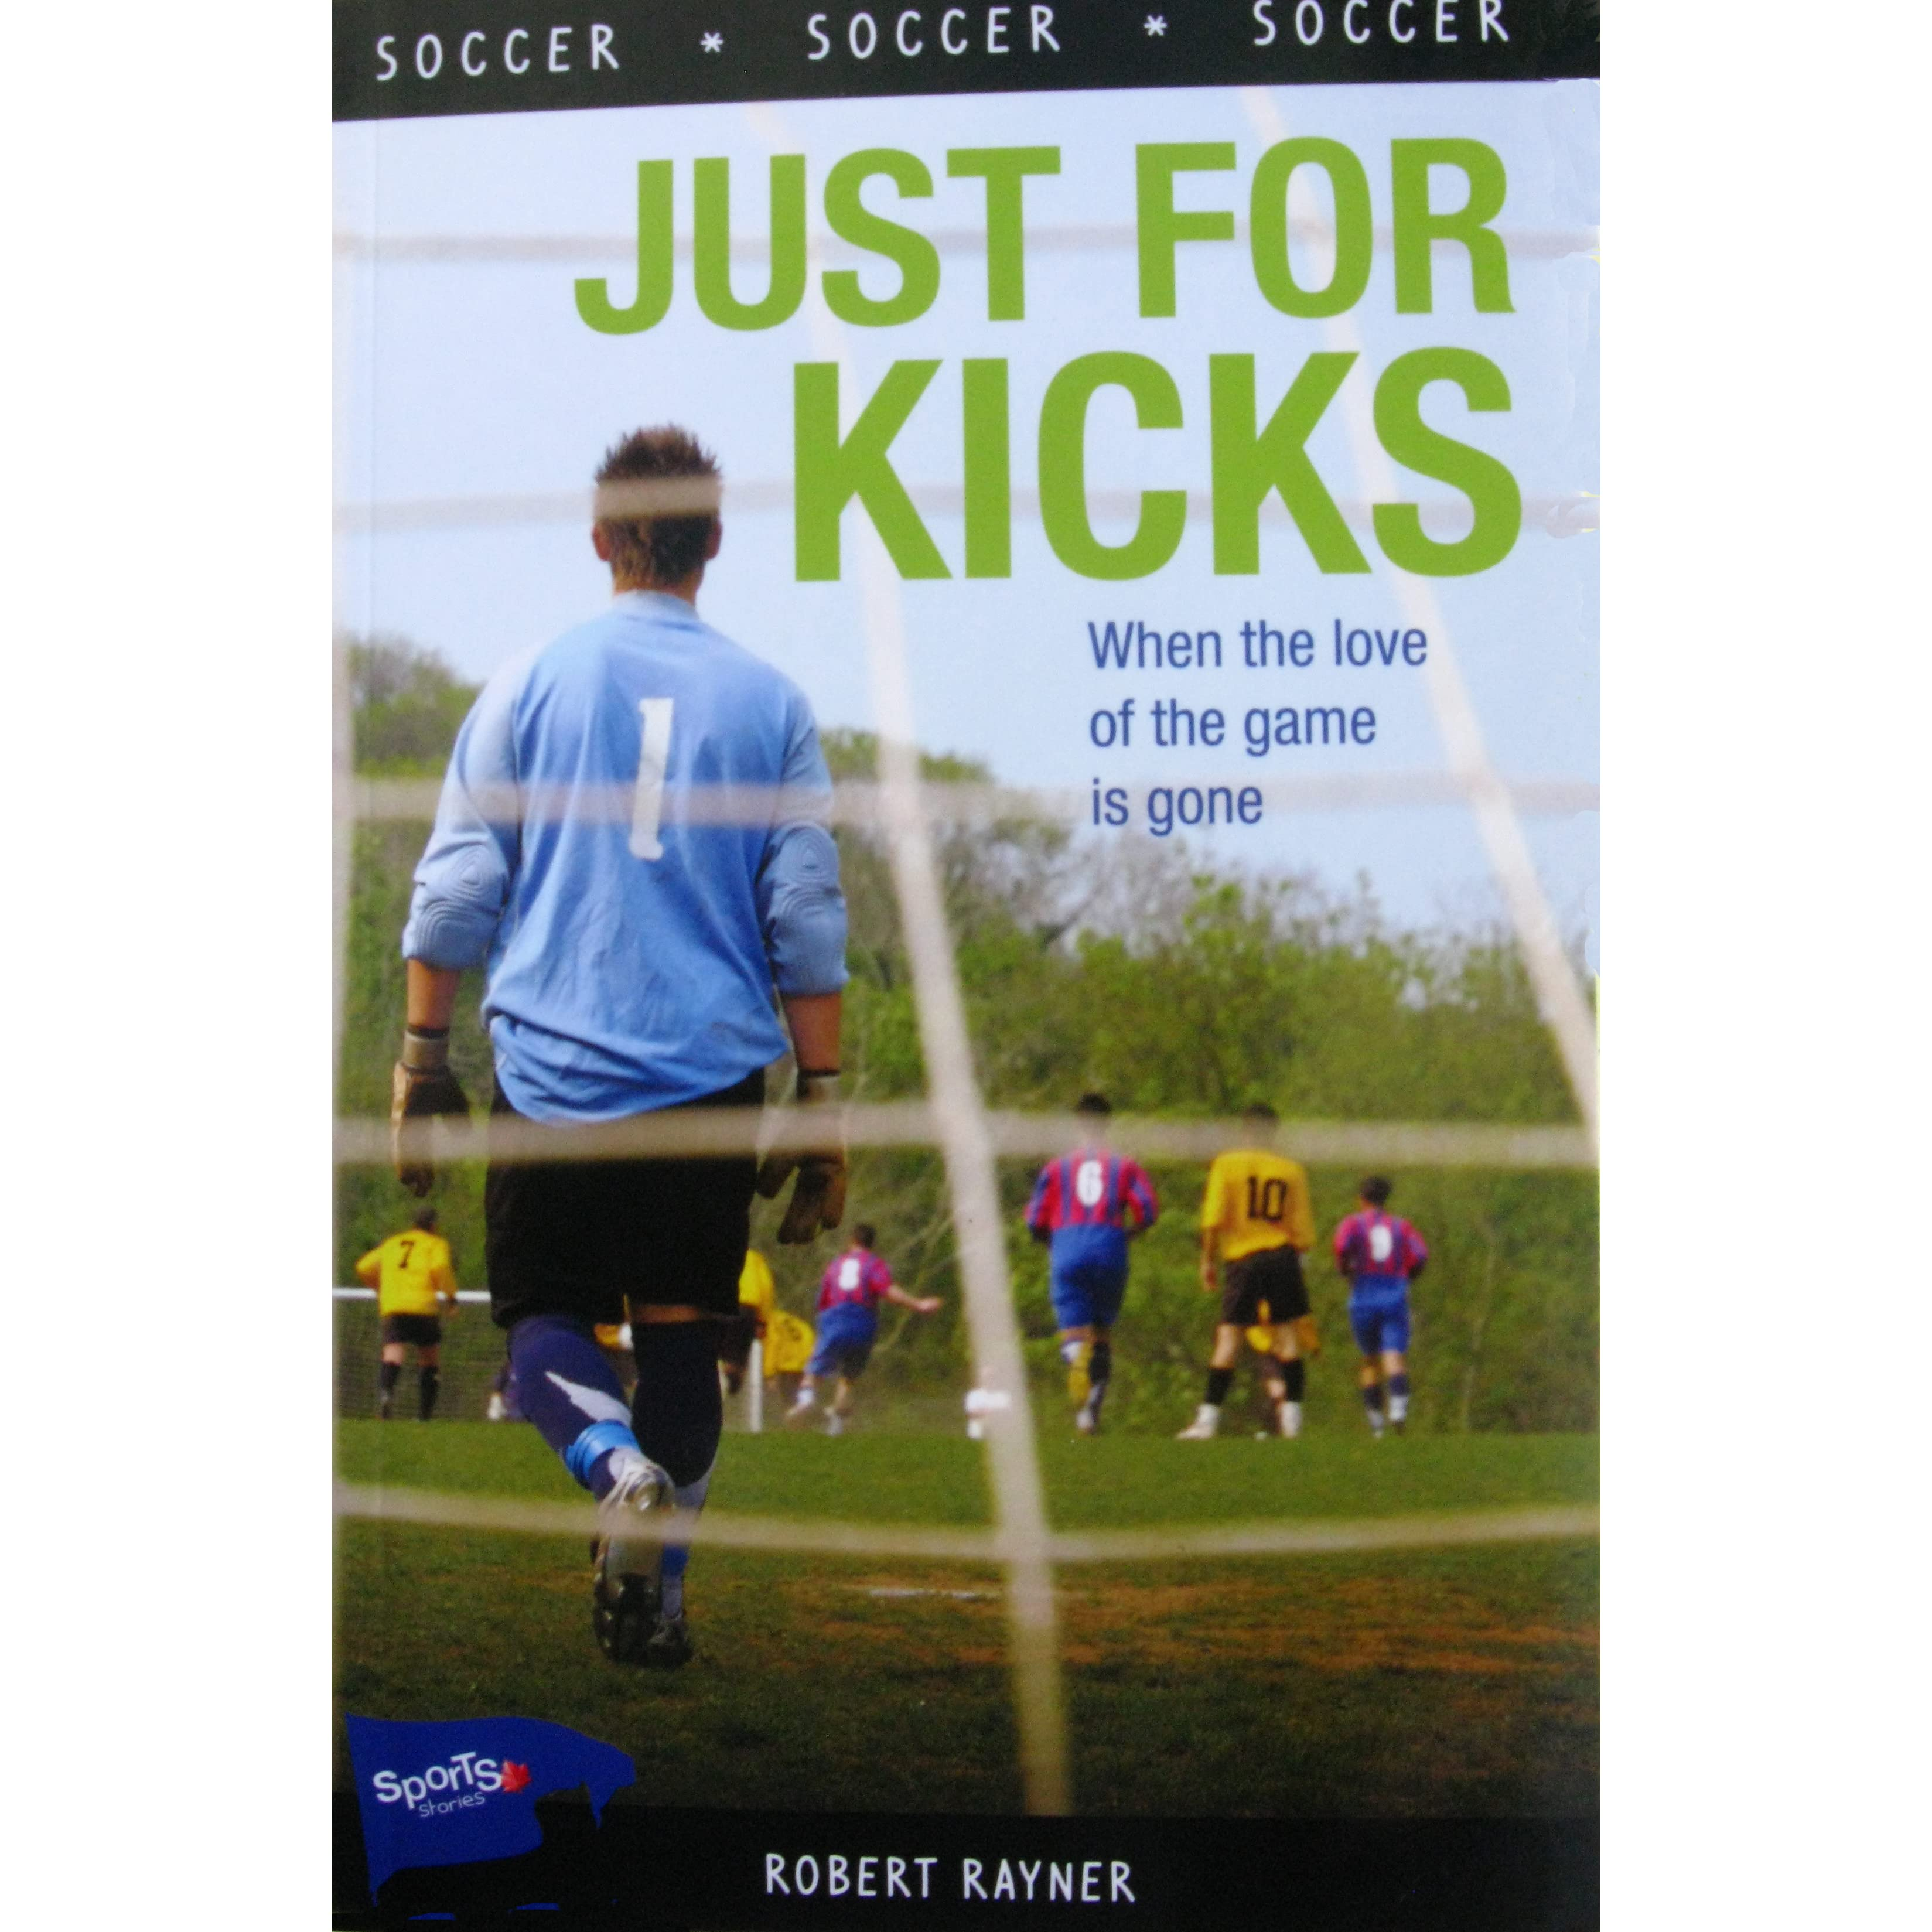 Just for Kicks by Robert Rayner